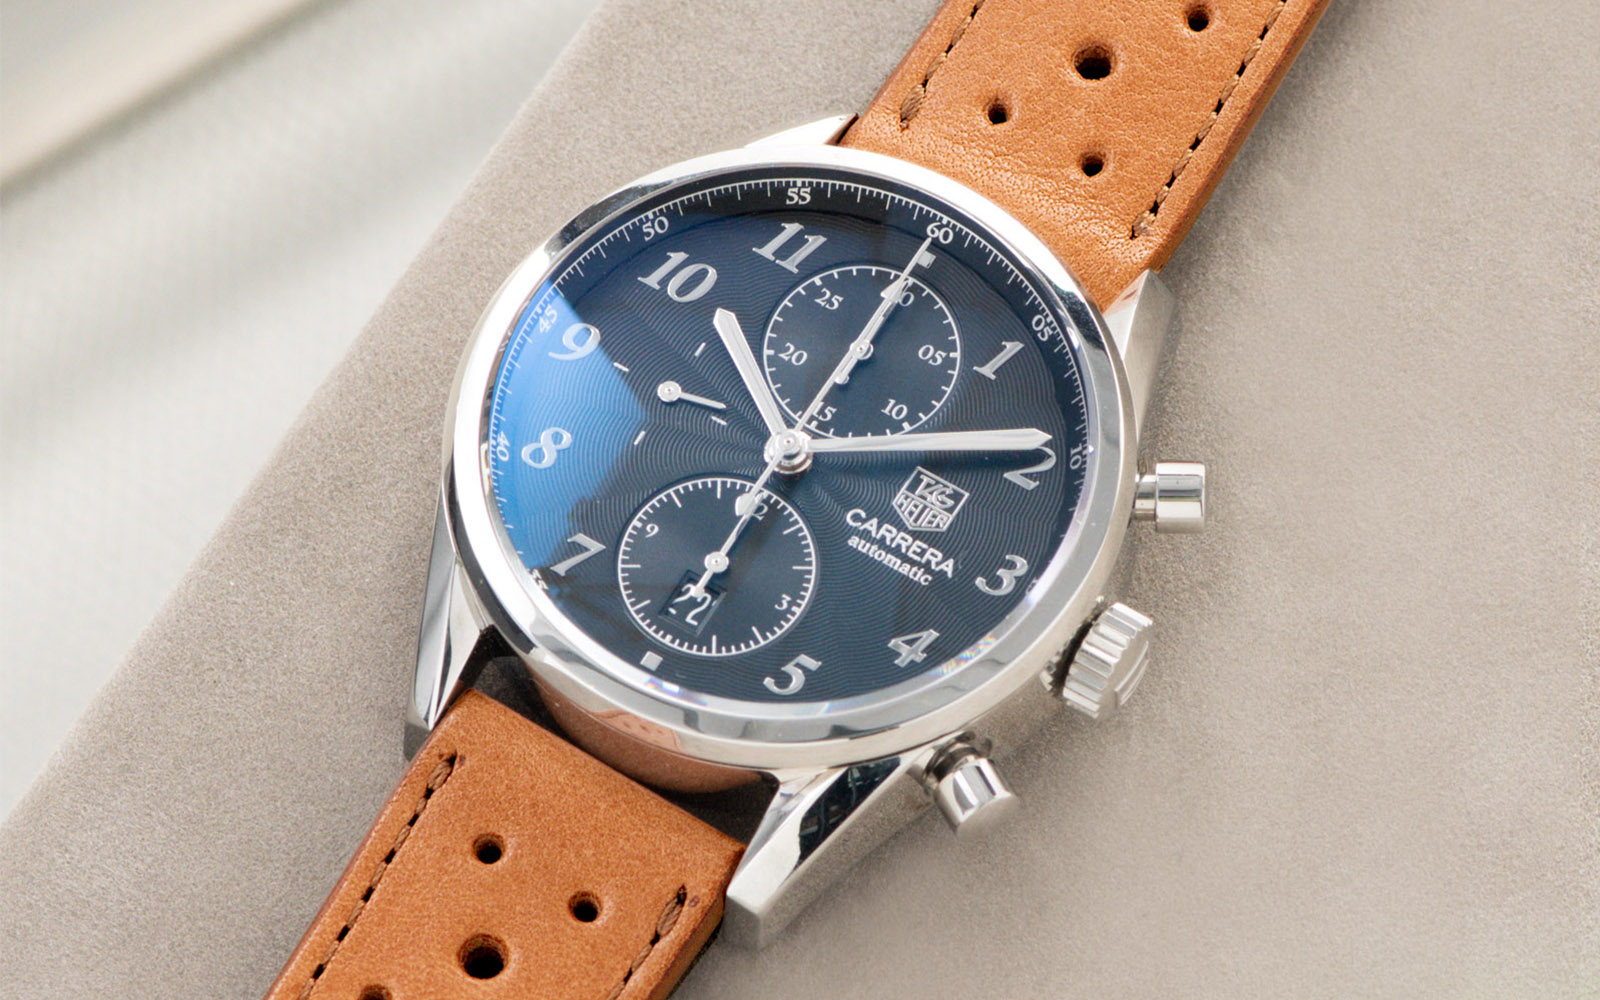 Bulang and Sons_Strap guide_Heuer Carrera Automatic_Racing Caramel Brown Leather Watch Strap_Banner